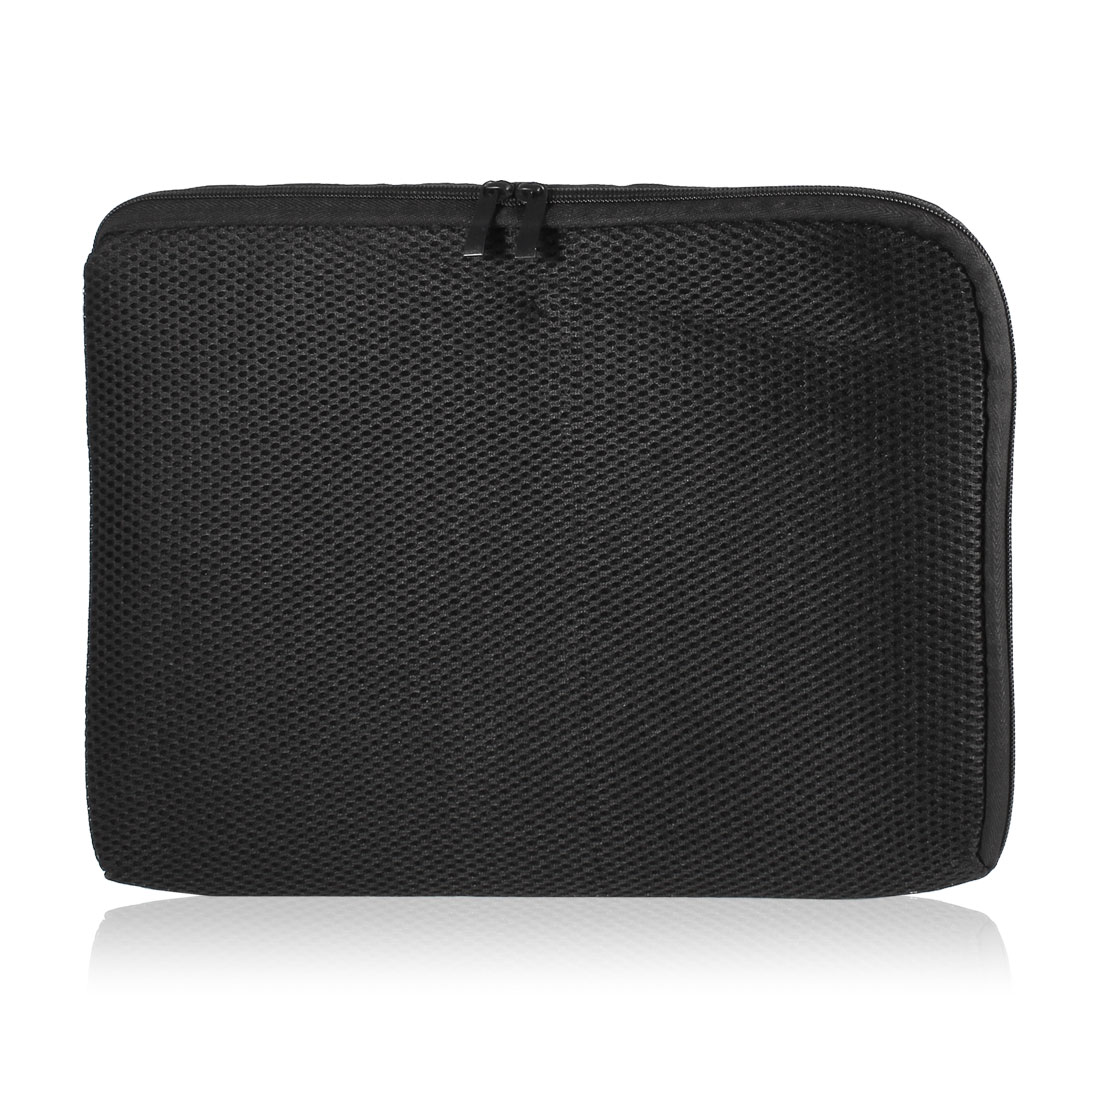 "13"" 13.3"" Black Mesh Neoprene Notebook Laptop Sleeve Bag Case"